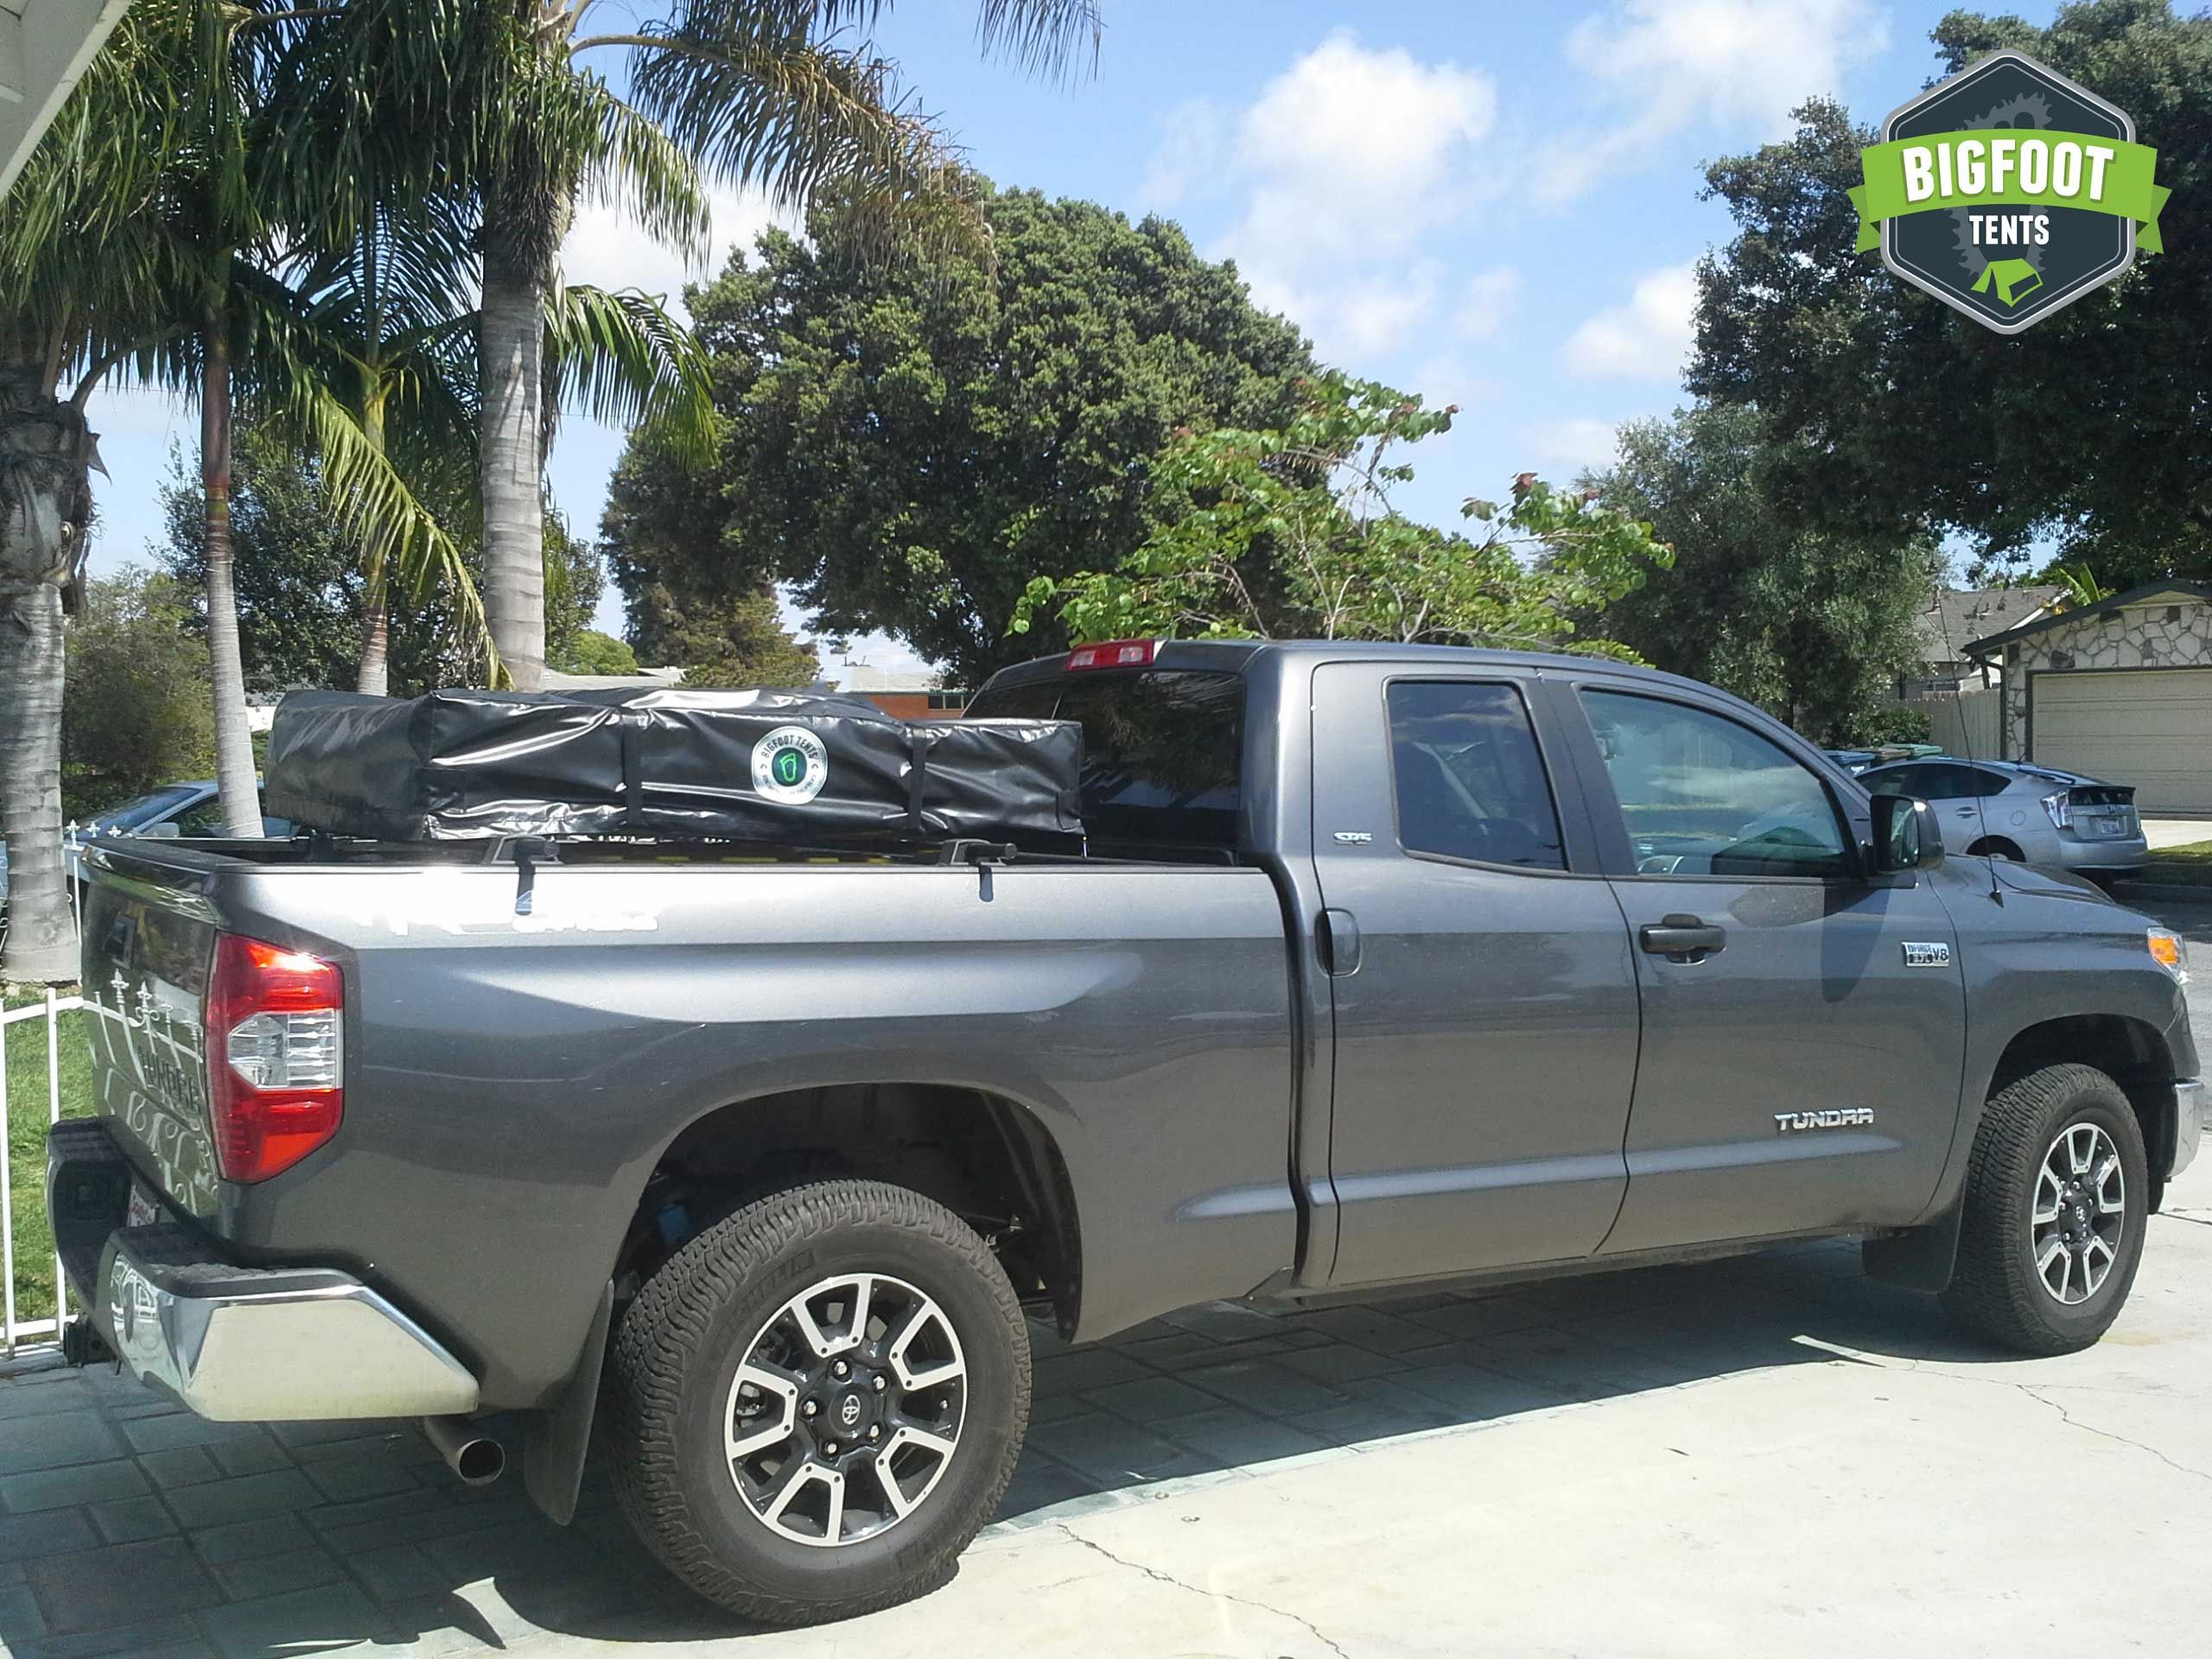 2015 Toyota Tundra with a Bigfoot Roof Top Tent mounted on